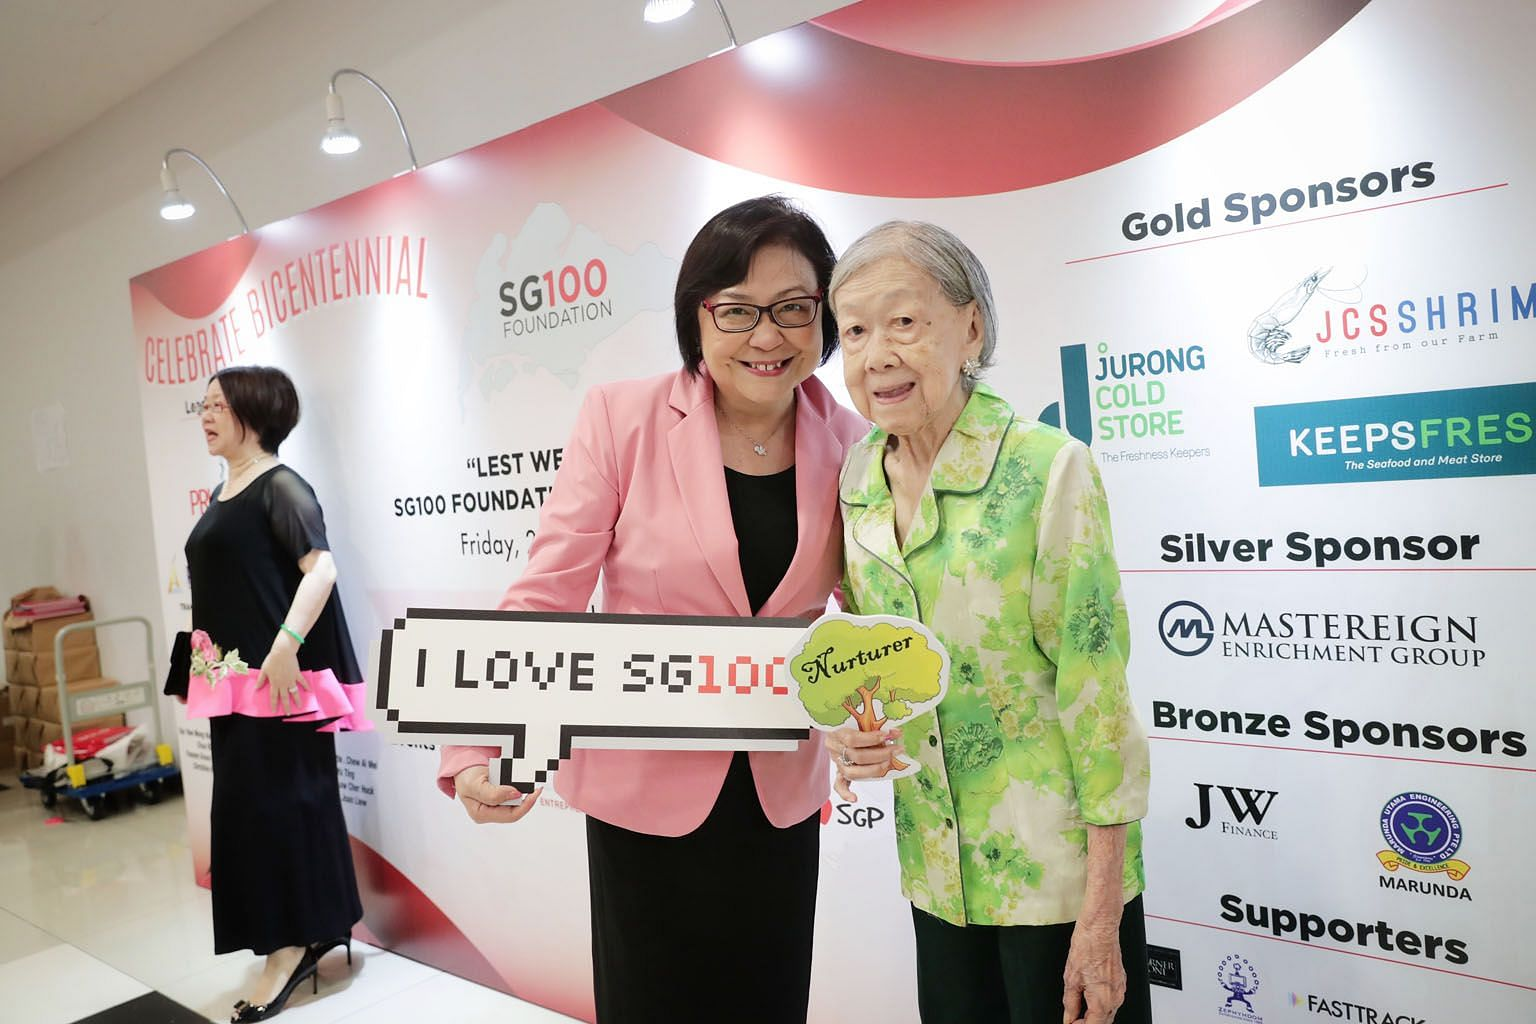 Dr Lillian Koh, 58, and her mother, Madam Goh Sock Chin, 99, at the SG100 Foundation dinner yesterday. Madam Goh was treated for a hip fracture and pneumonia last year but she remains in high spirits and is looking forward to her 100th birthday soon.